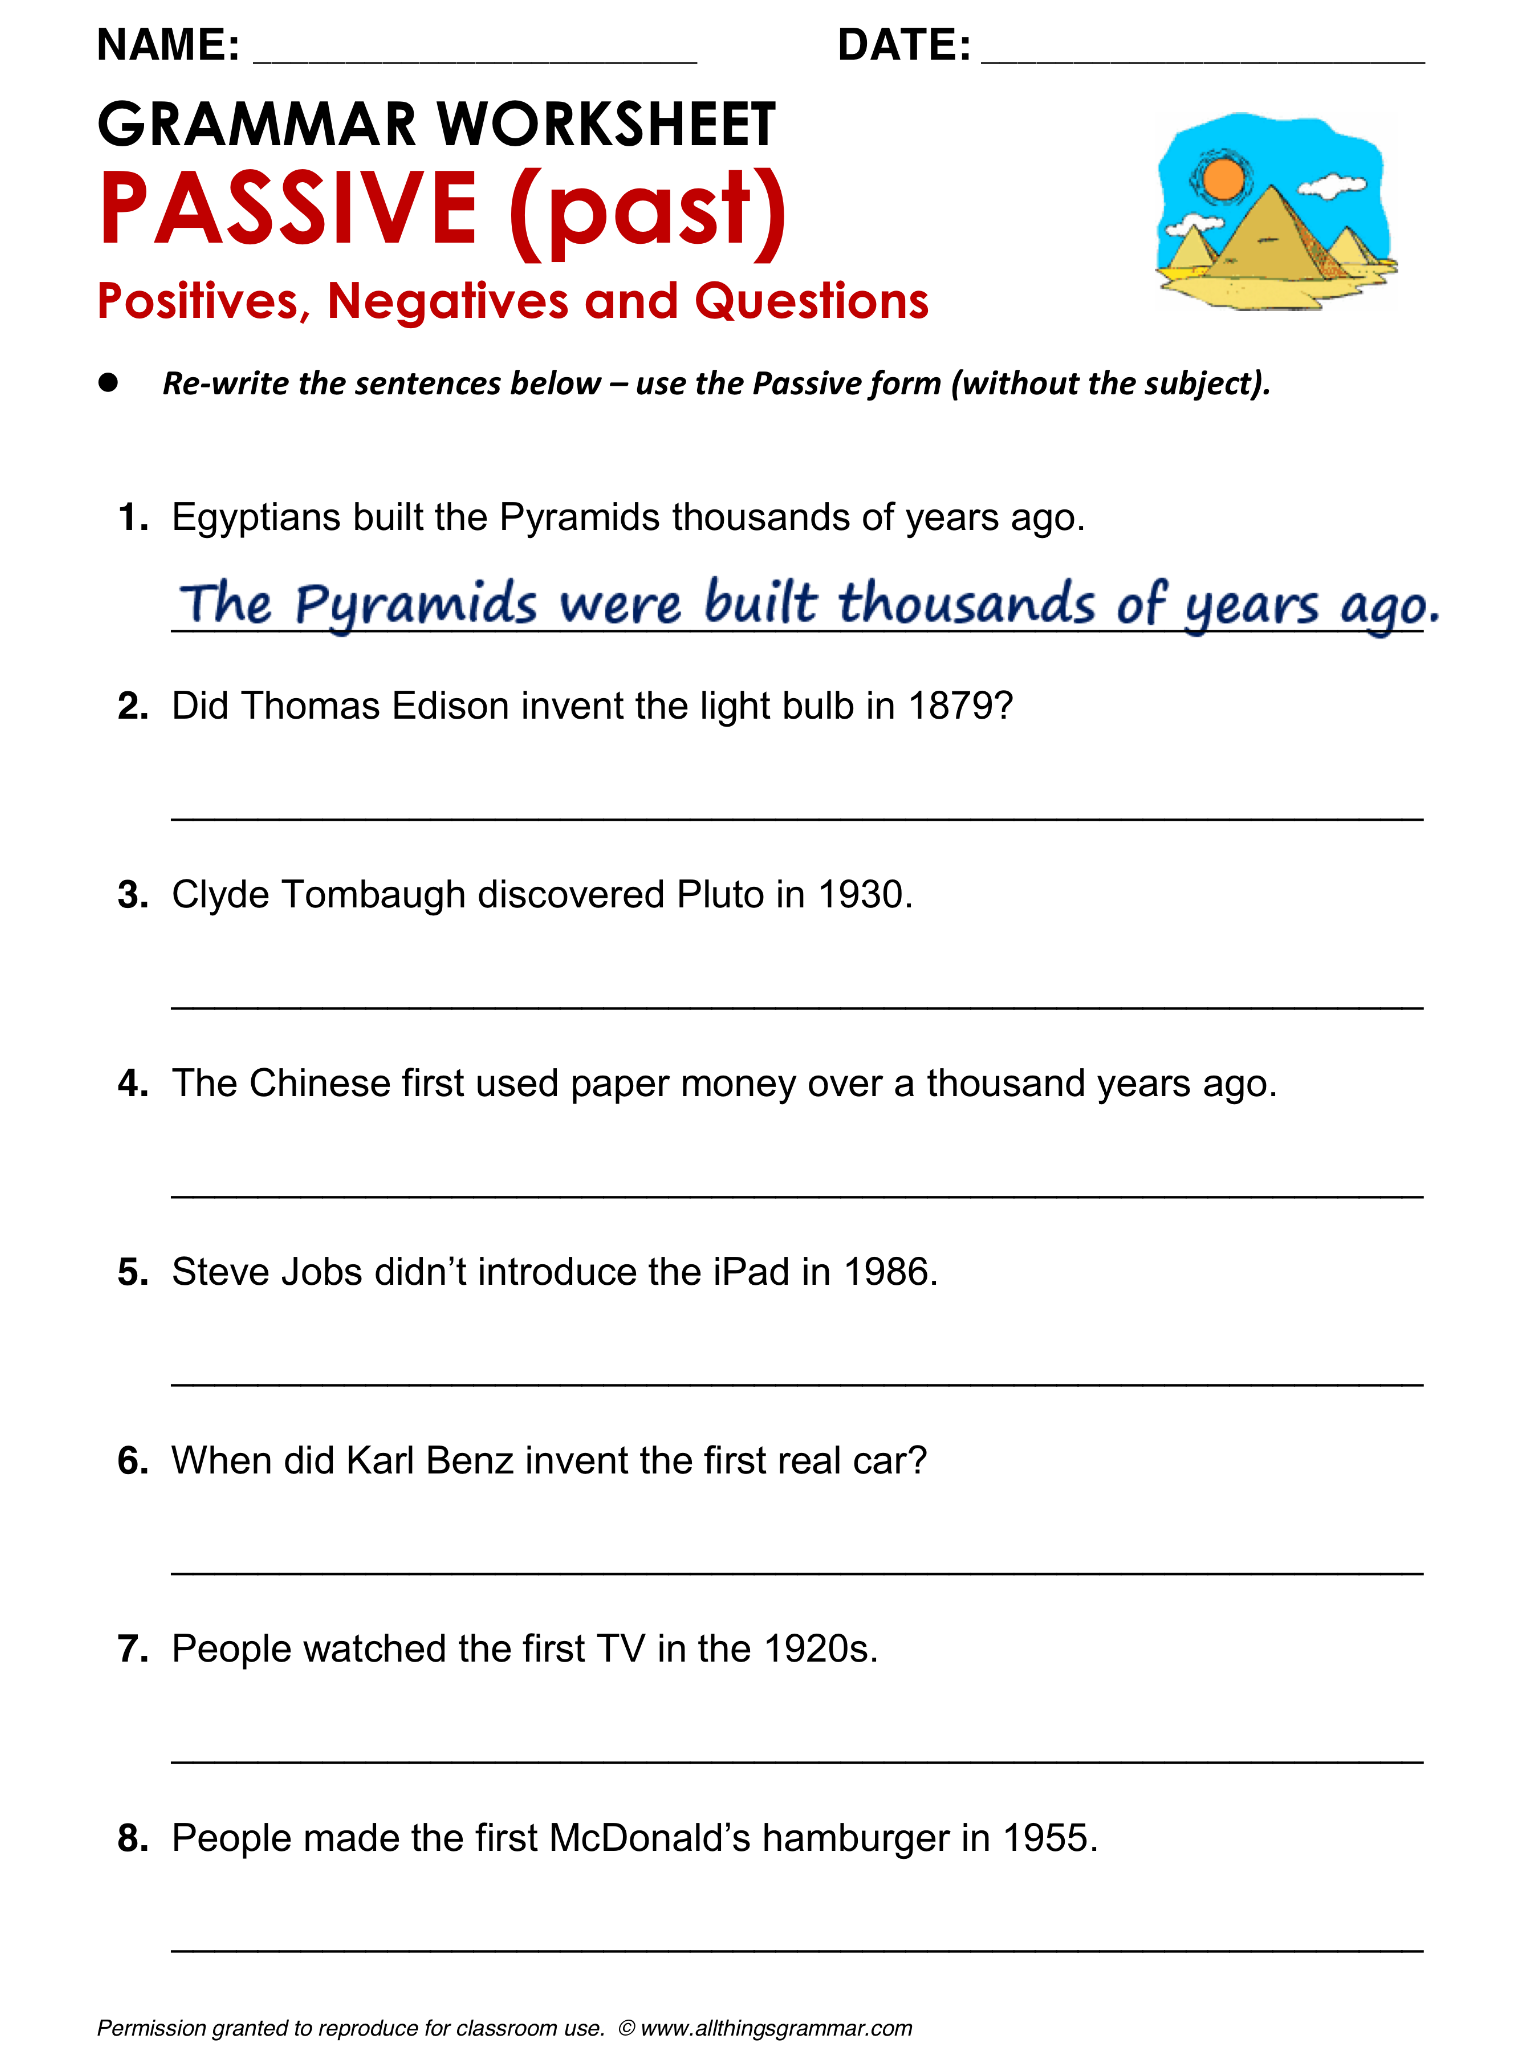 worksheet Grammar Review Worksheets english grammar worksheet passive past positives negatives and questions active